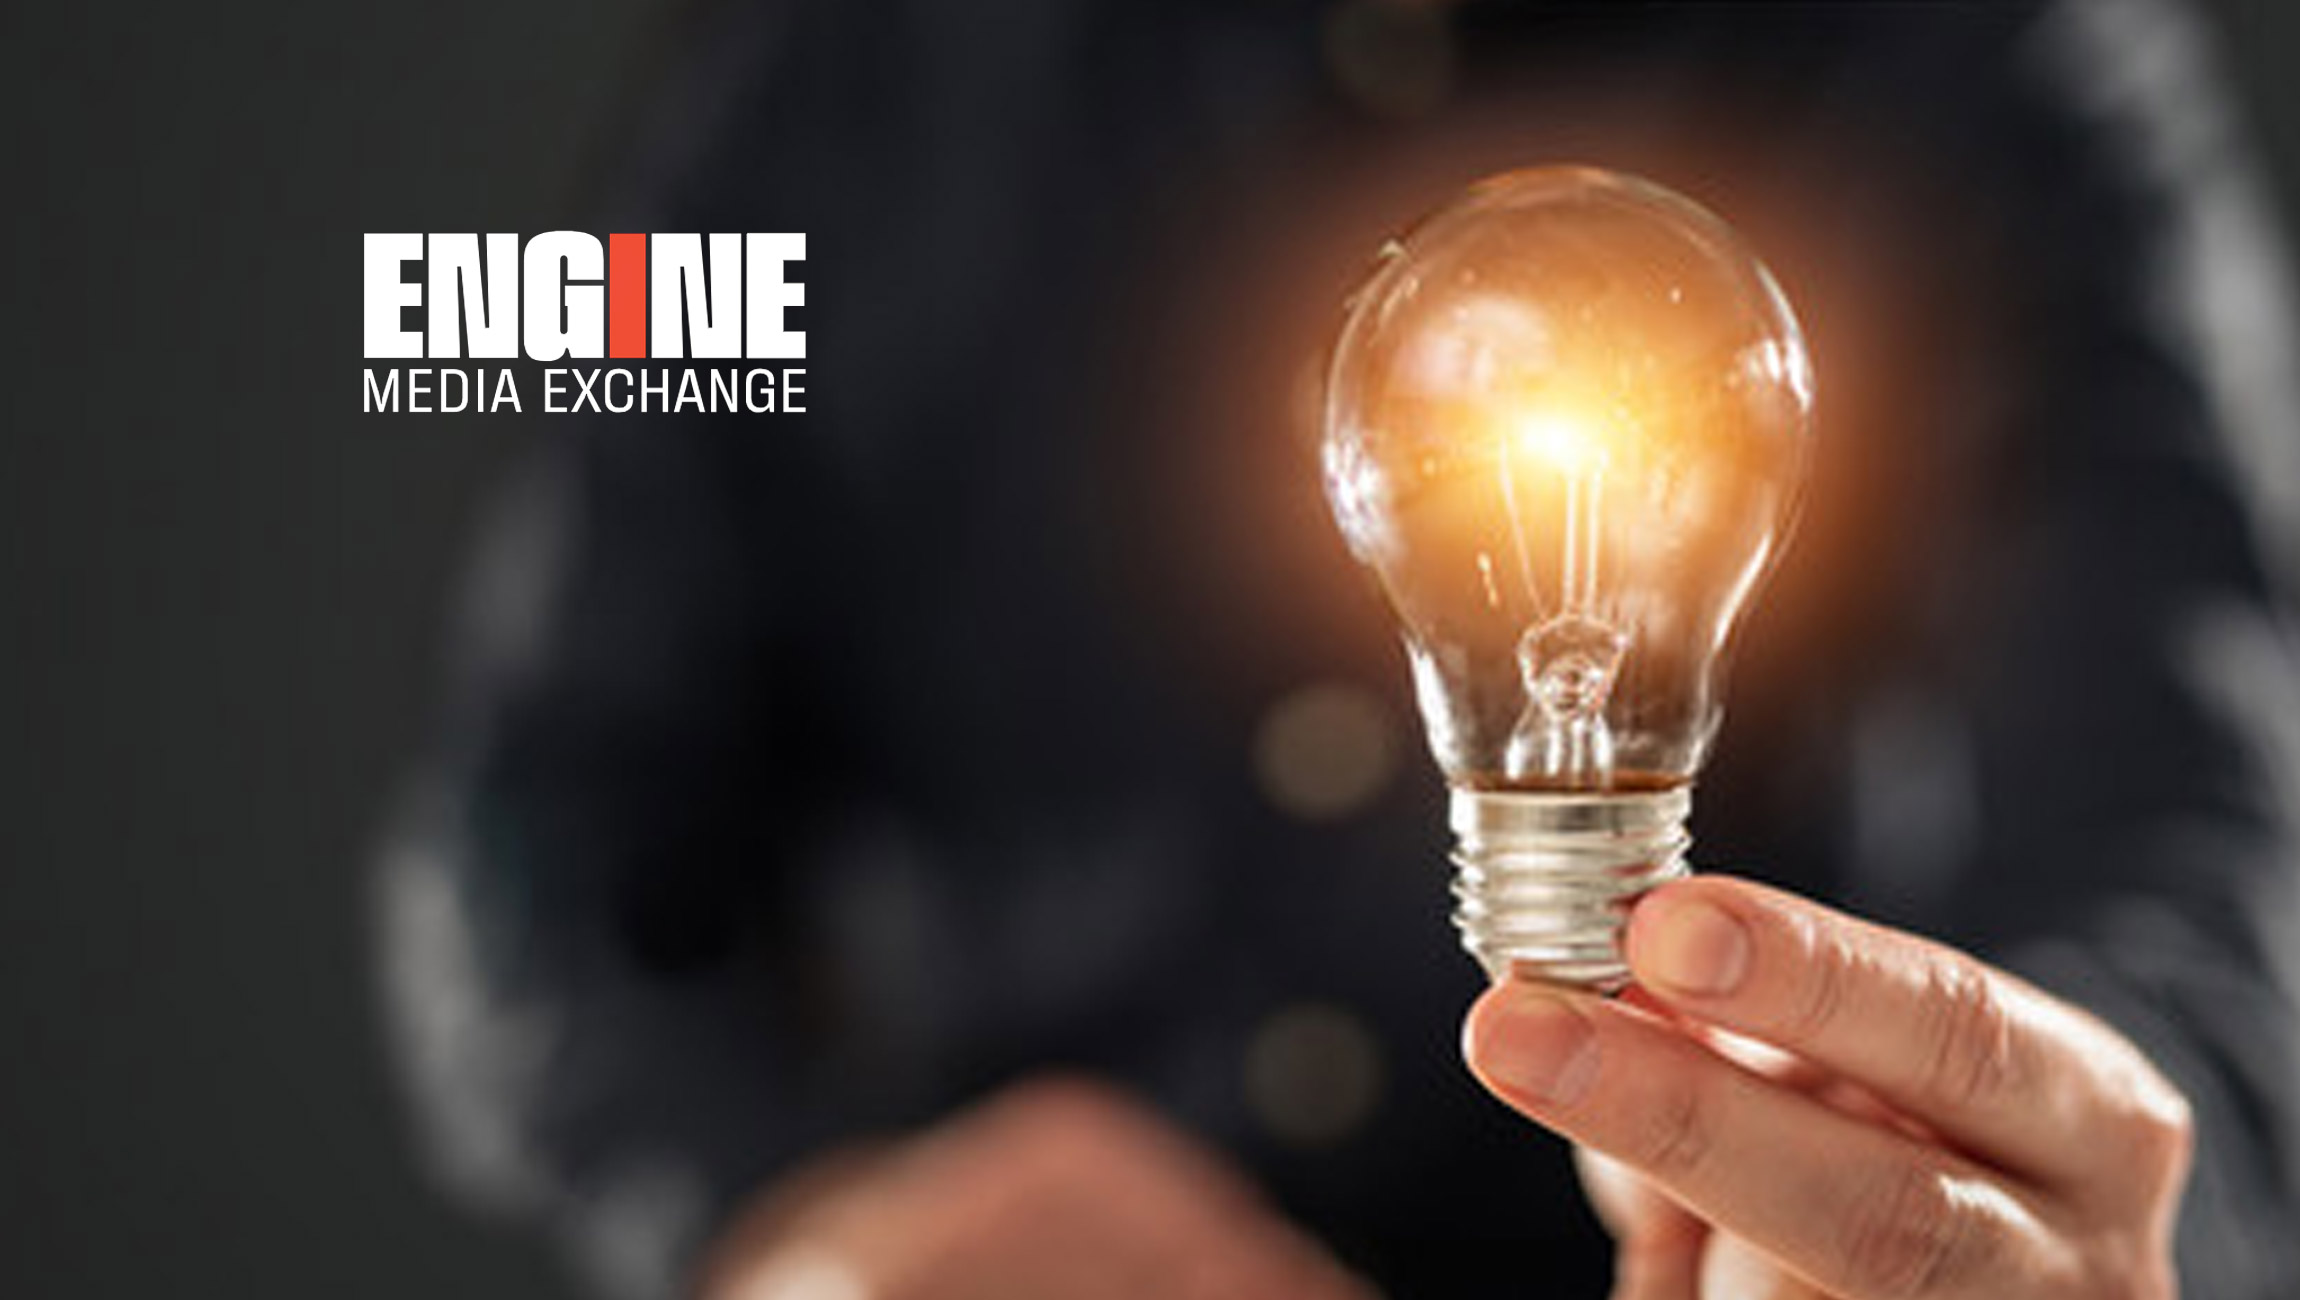 """ENGINE Media Exchange (EMX) Introduces """"Exchange BI"""" The Industry's First Log Level Data Dashboard, Reinforcing Its Commitment To Transparency"""